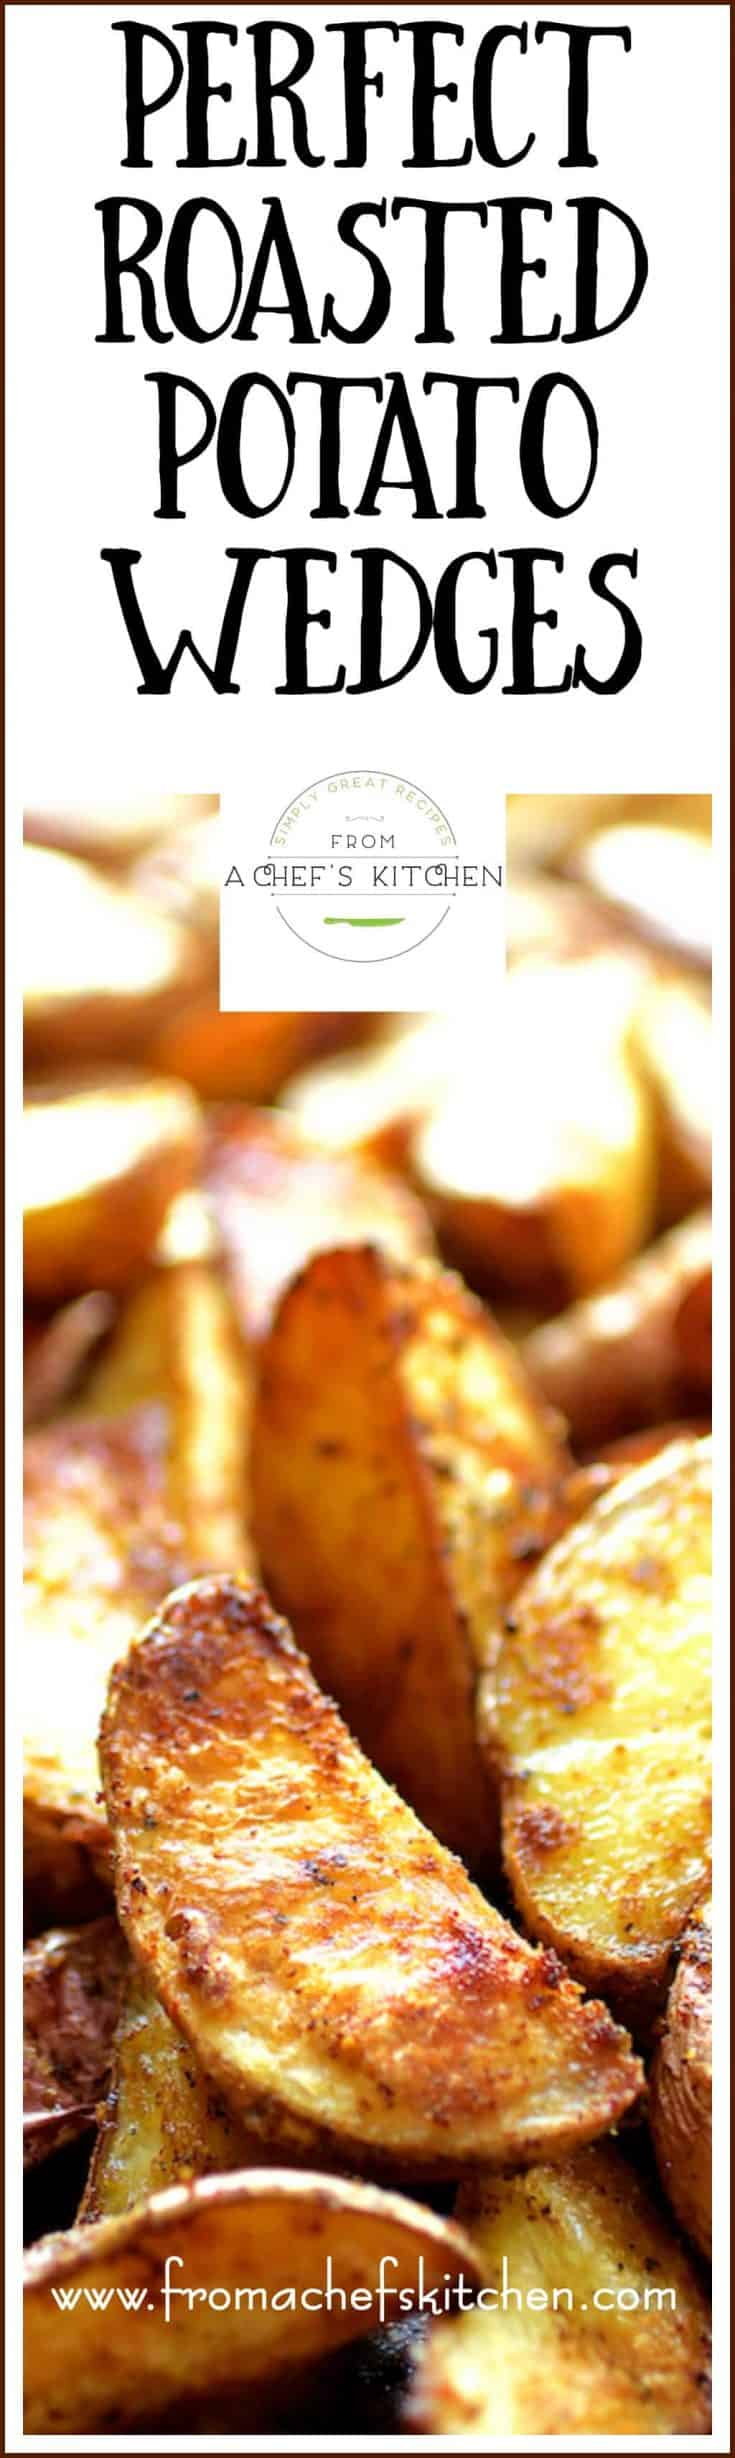 Perfect Roasted Potato Wedges are an easy side dish that will impress everyone! Here are my personal chef secrets for perfectly crispy and delicious roasted potato wedges! #potato #roastedpotatoes #roastedpotatowedges #potatosidedish